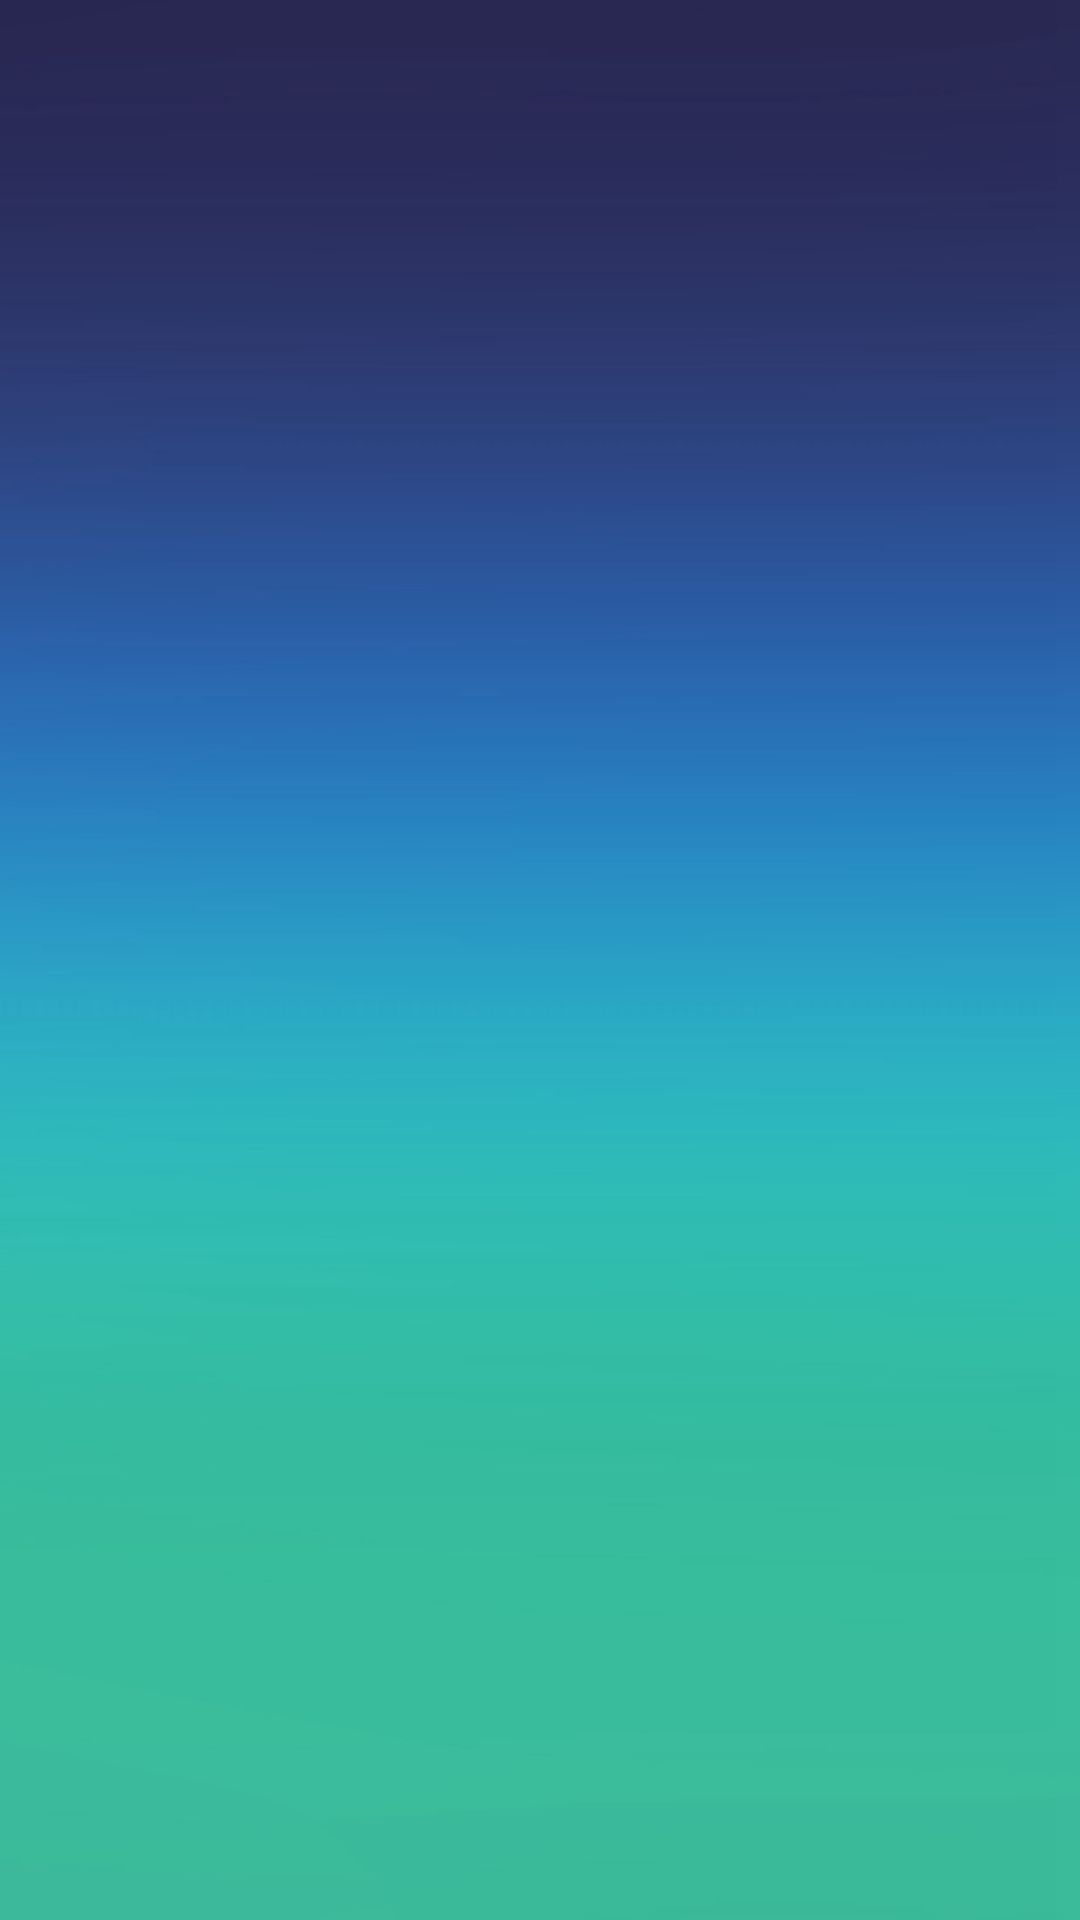 Nintendo Green Blue Gradation Blur Iphone 6 Wallpaper Download Iphone Wallpapers Ipad Wallpapers One Stop D Sky Color Colorful Wallpaper Blue Sky Background